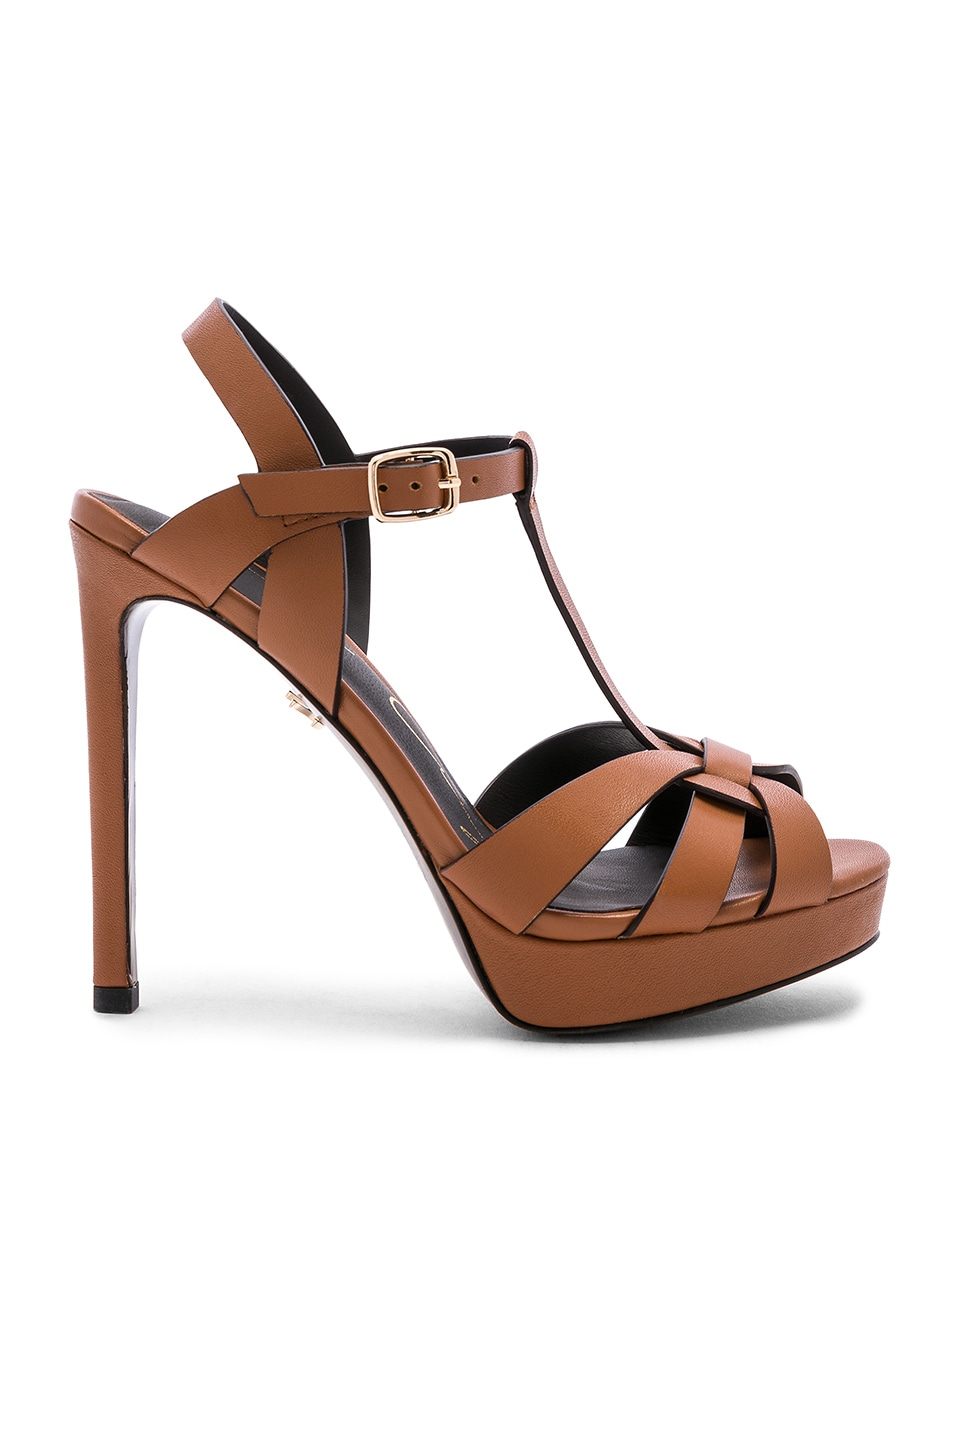 Lola Cruz Ankle Strap Heel in Tan